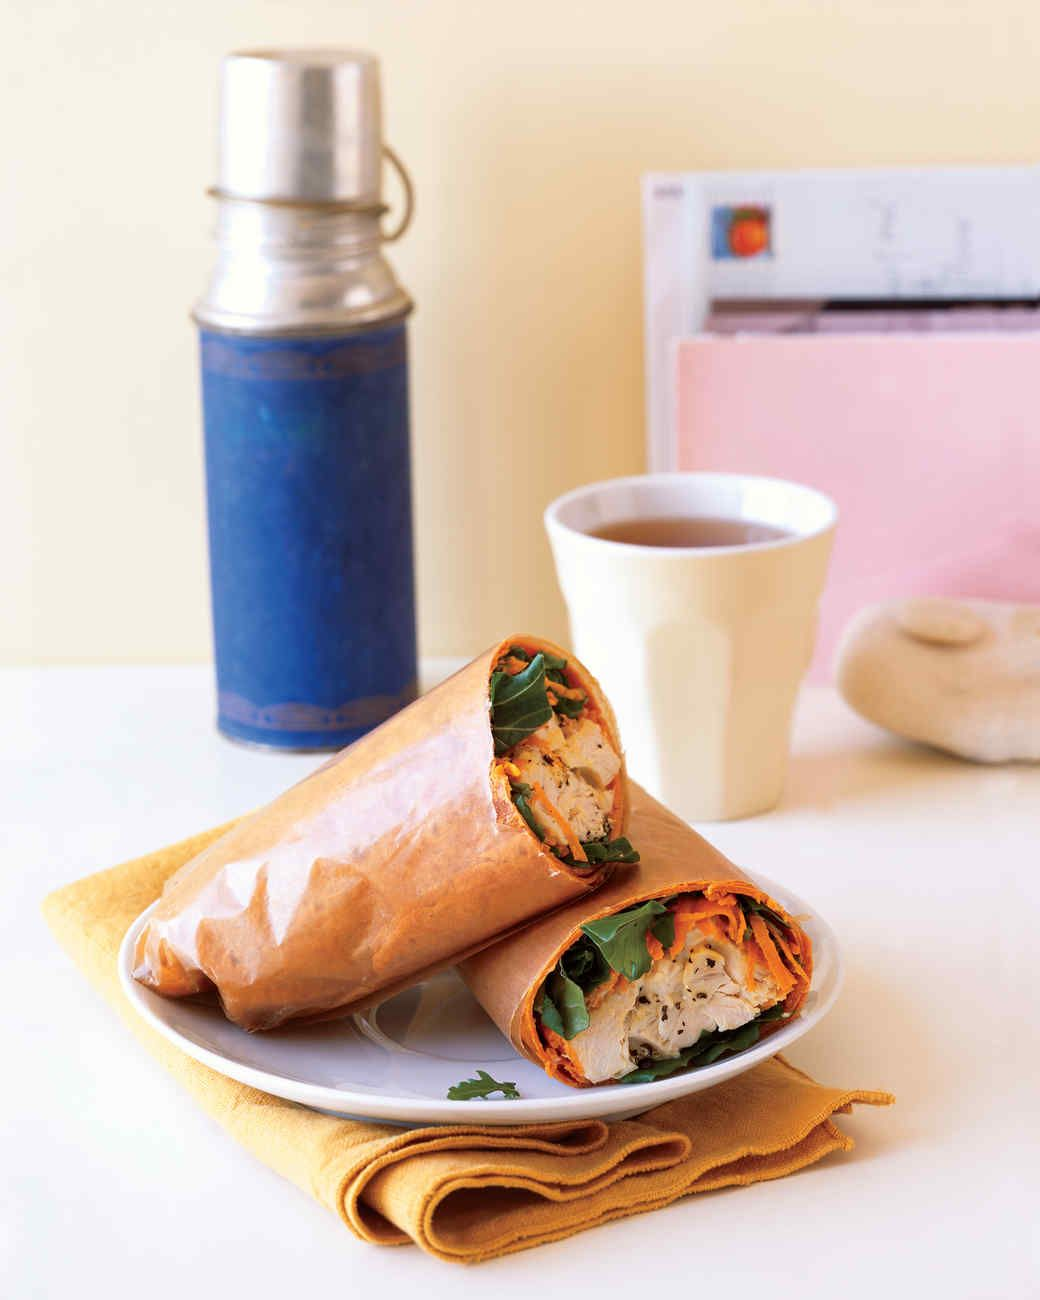 This lunch gets its energizing nutrients from moist turkey, crunchy carrot and spinach, and a flavored tortilla.